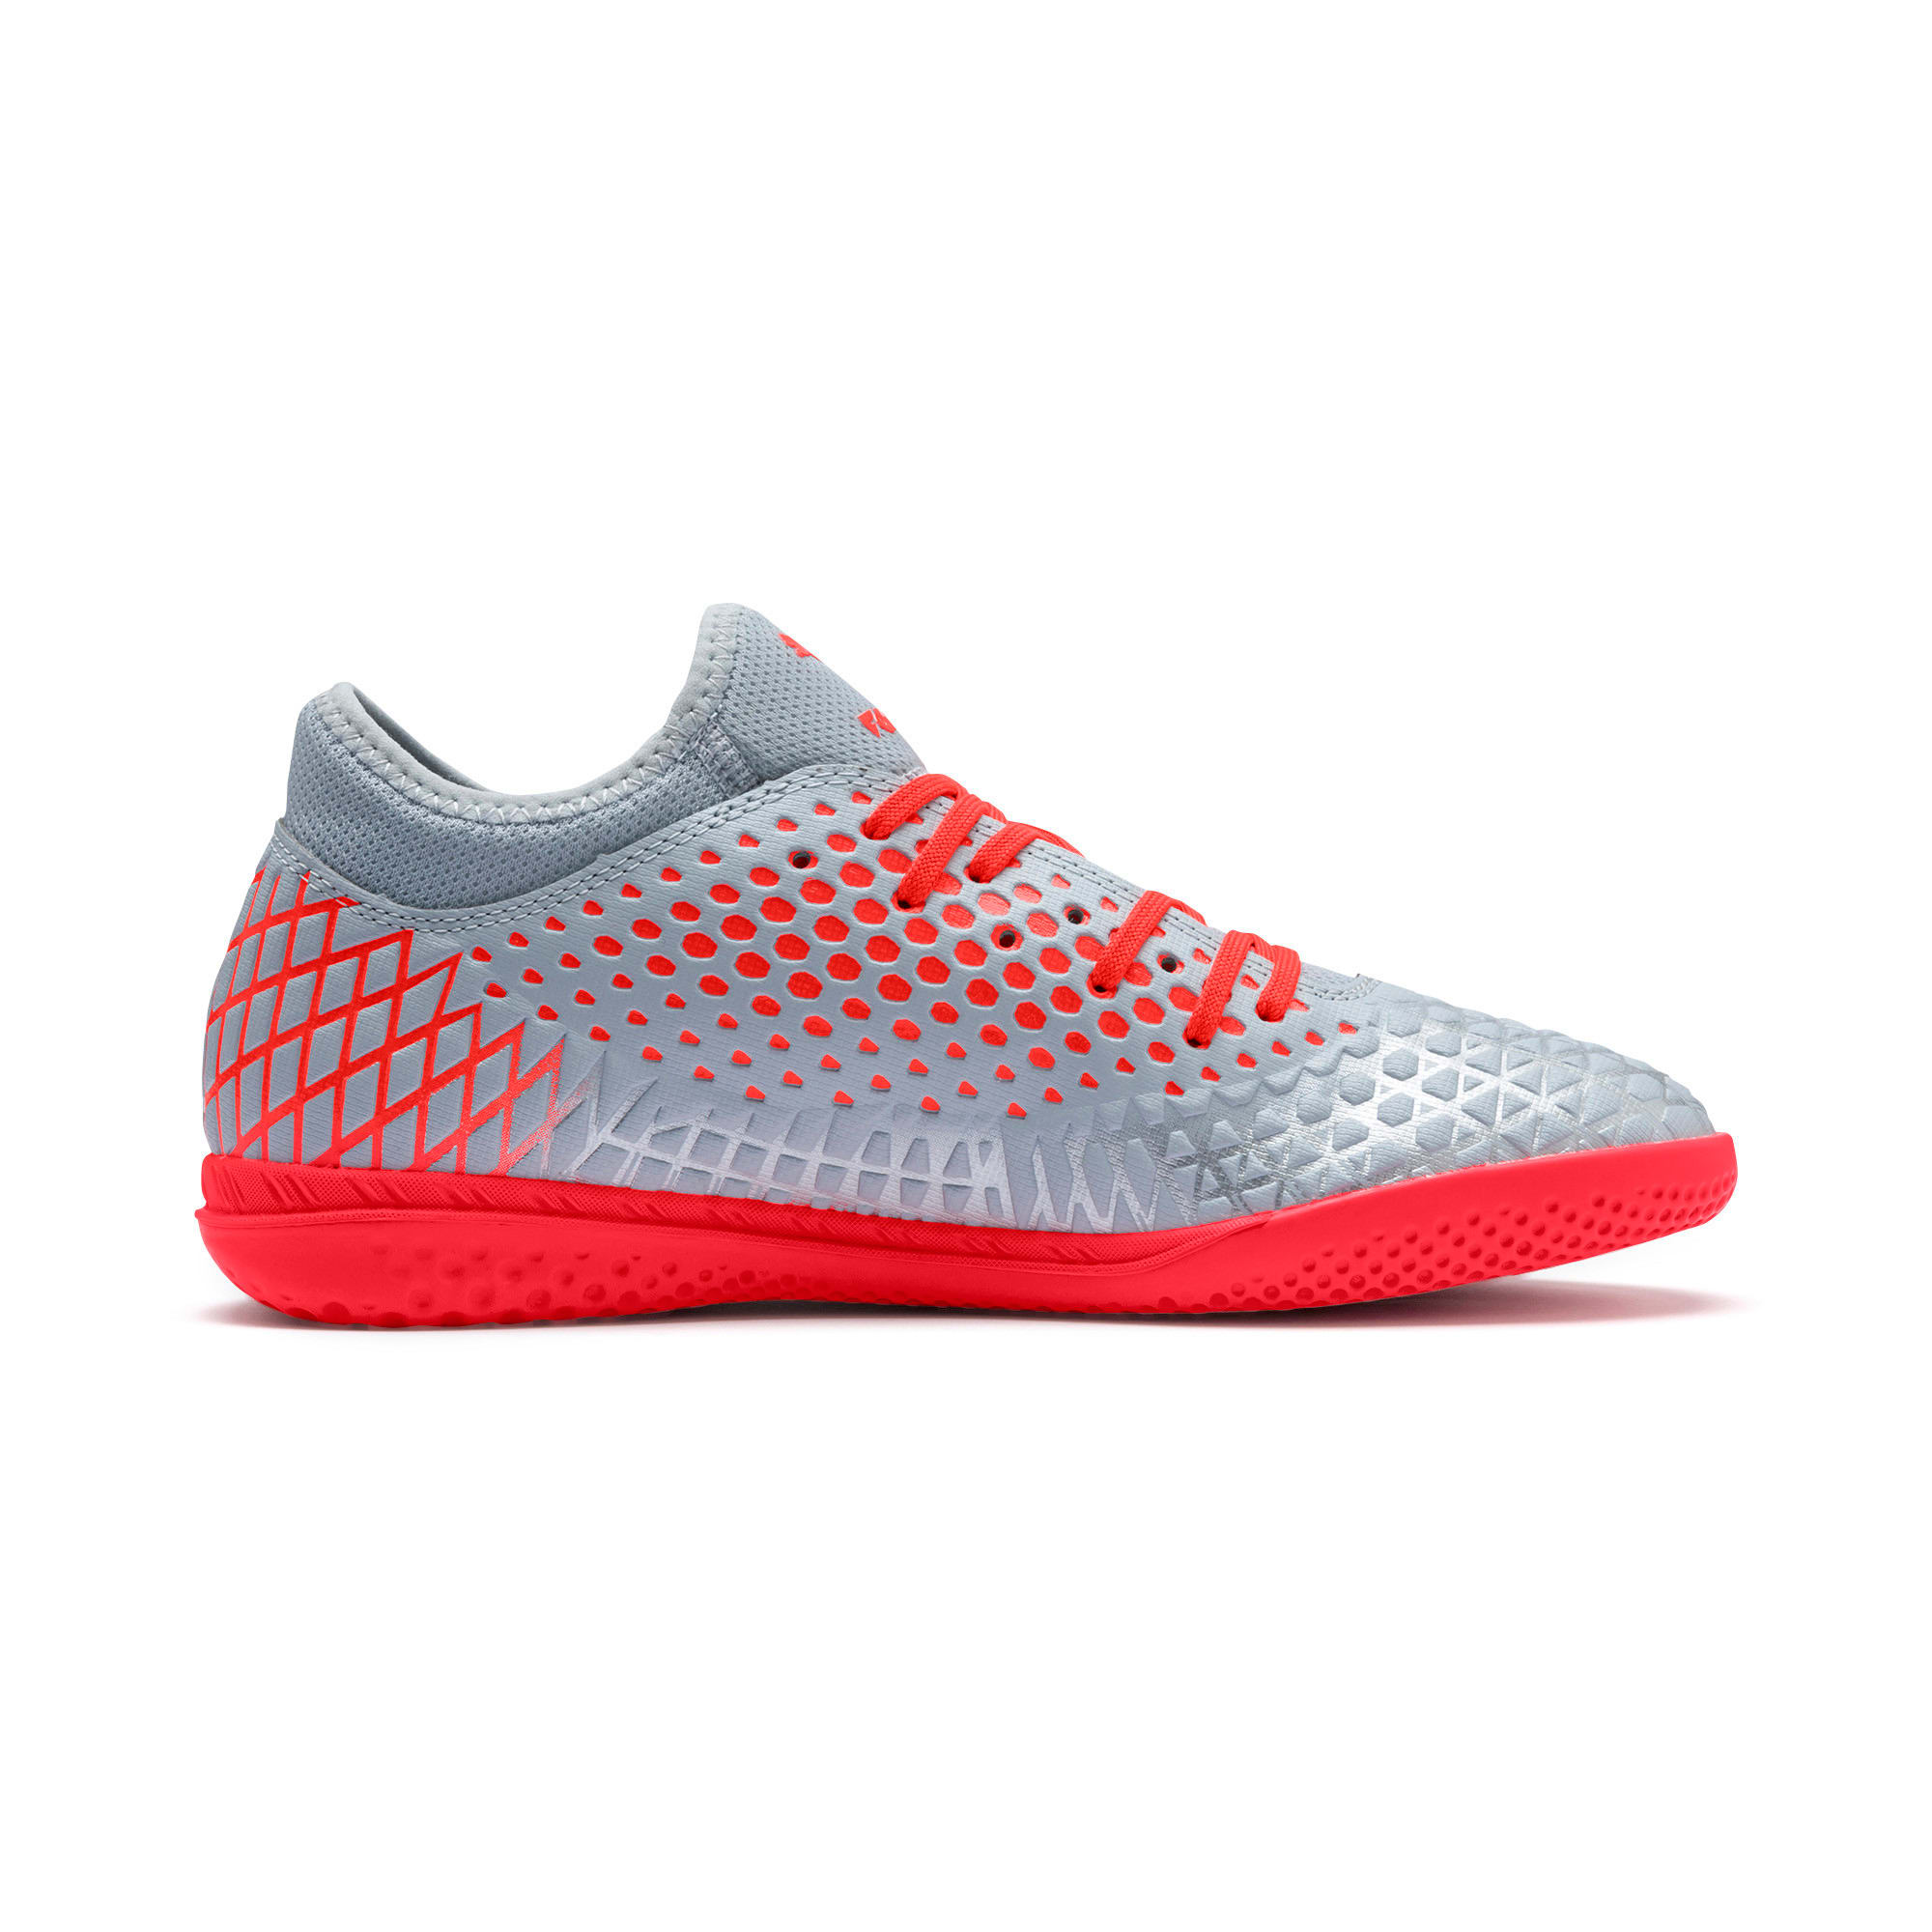 Thumbnail 6 van FUTURE 4.4 IT voetbalschoenen voor heren, Glacial Blue-Nrgy Red, medium